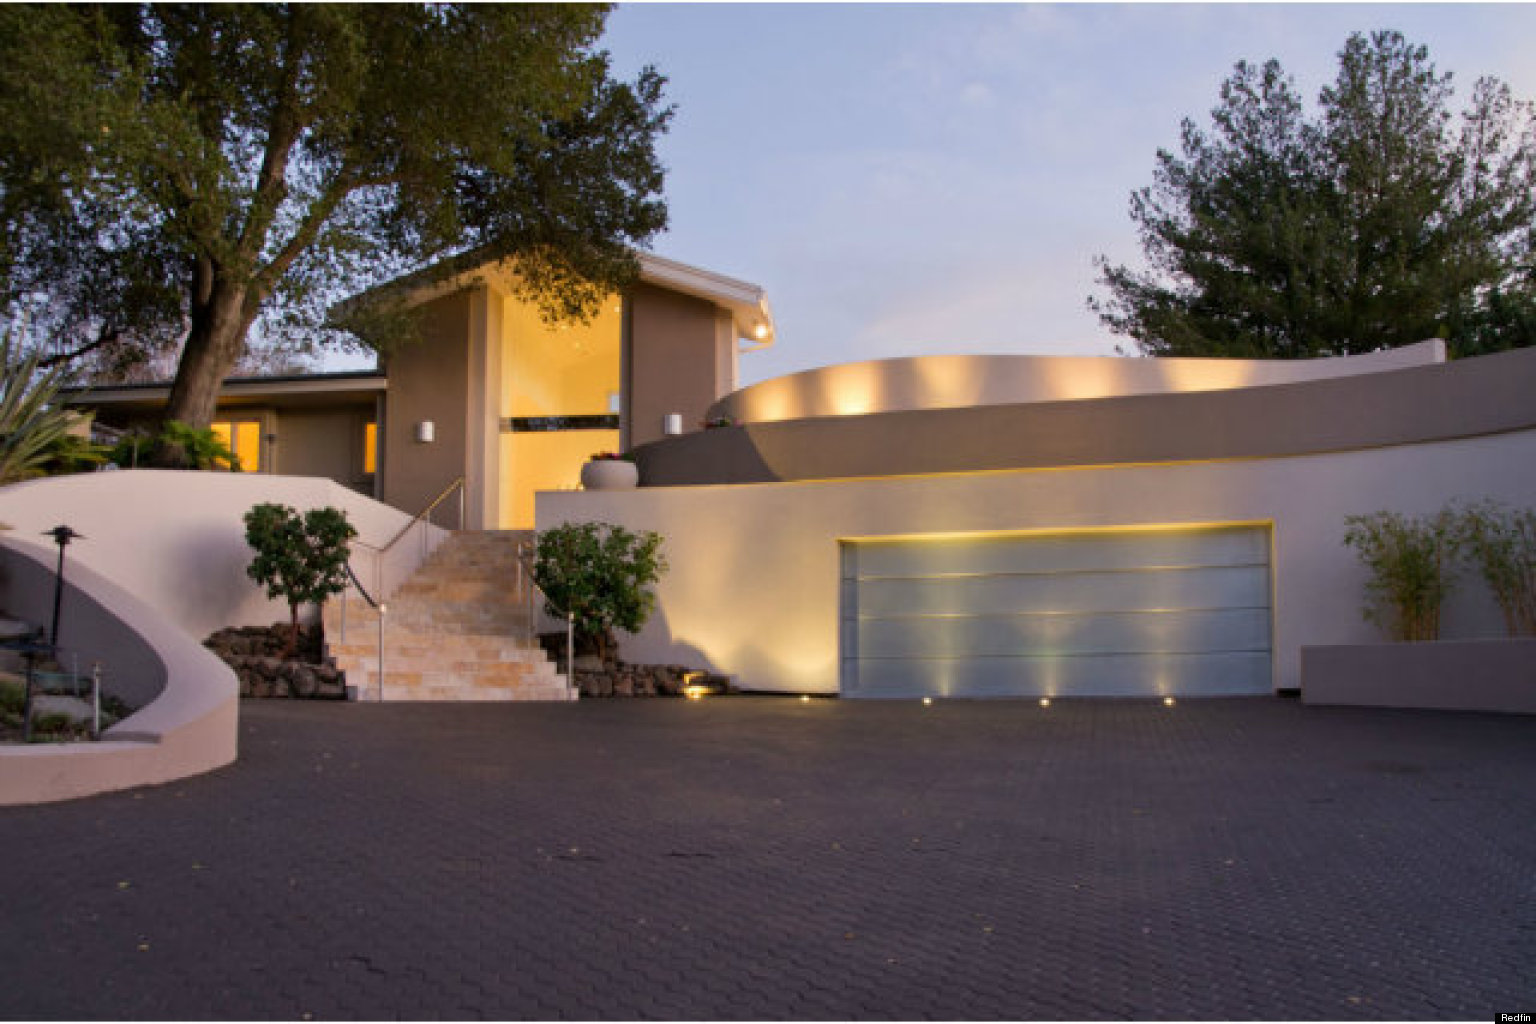 Steve wozniak 39 s former home hits the market photos for Modern homes jobs